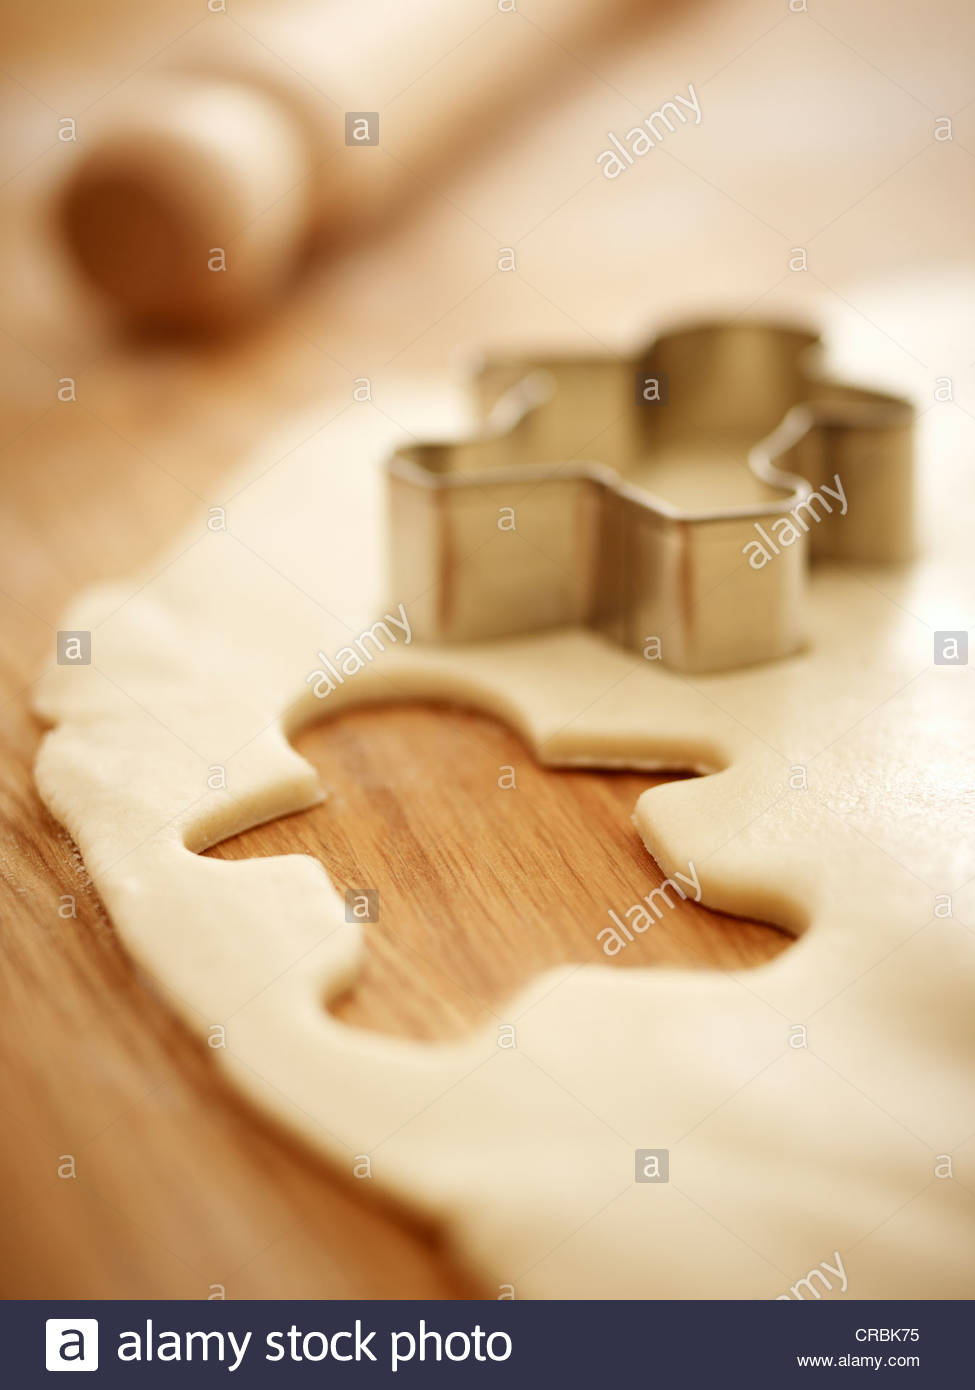 Gingerbread man cookie cutter on dough - Stock Image